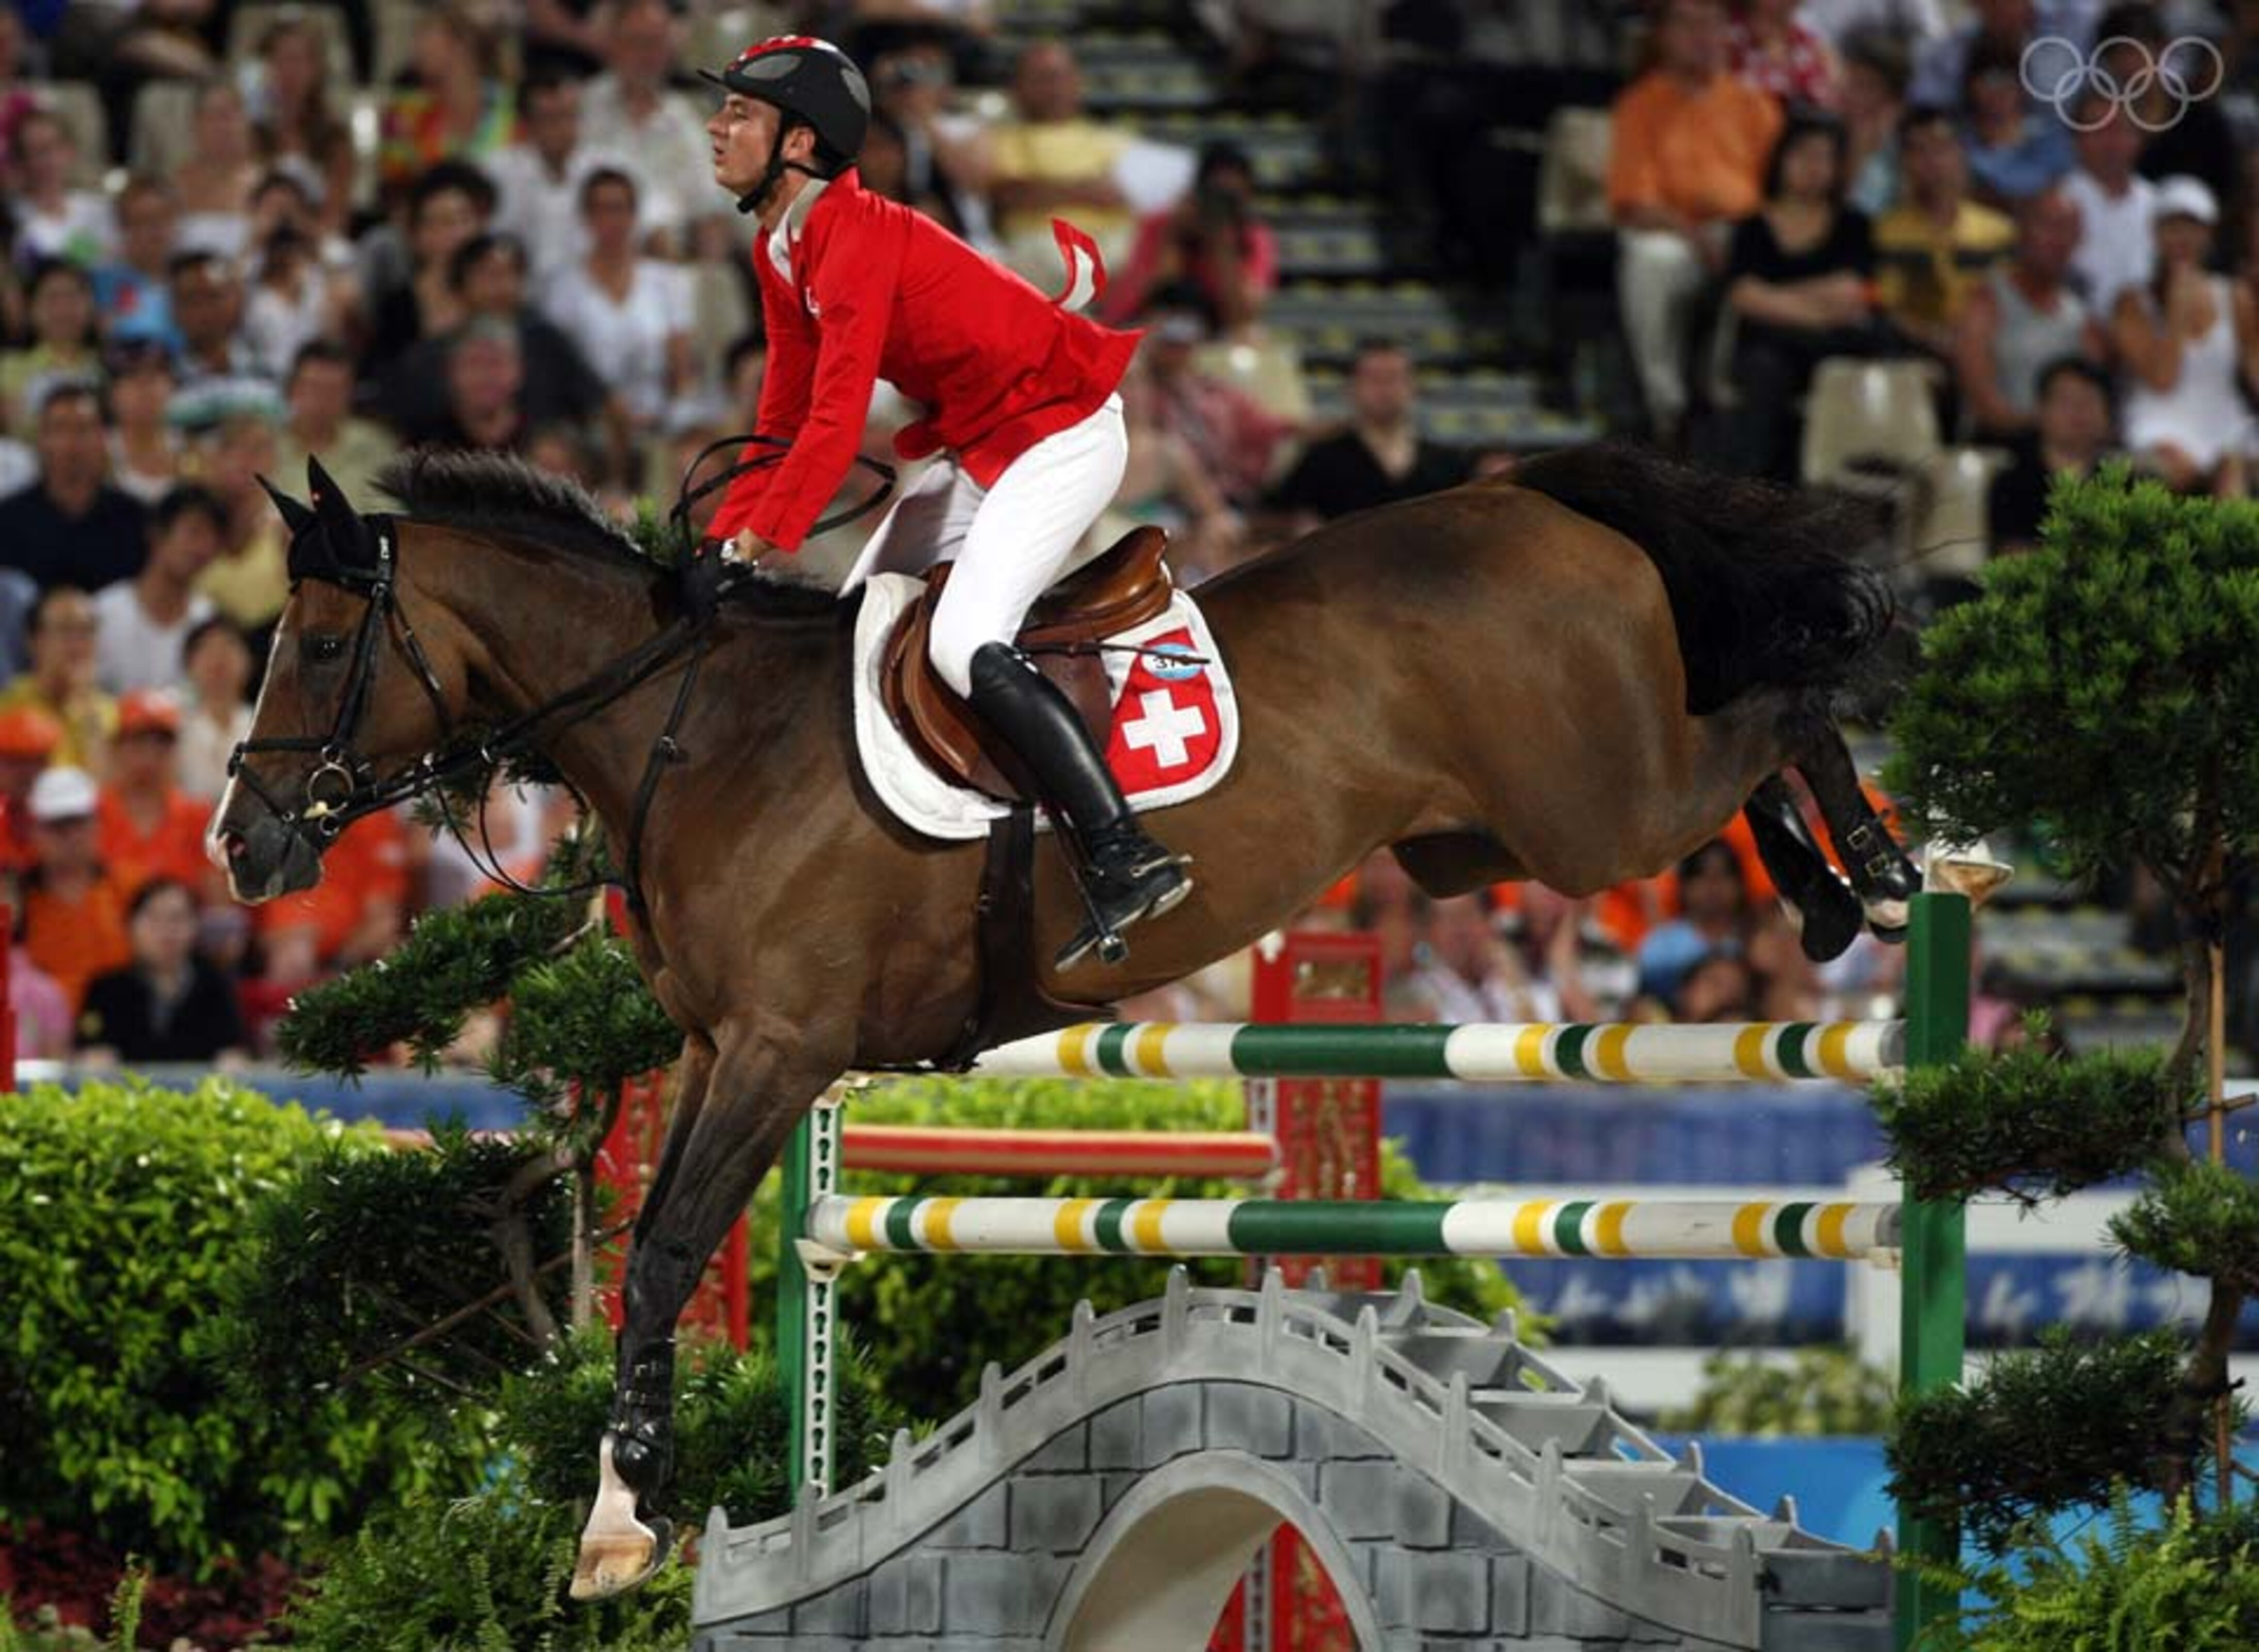 Equestrian Jumping Beijing 2008 Photos Best Olympic Photos